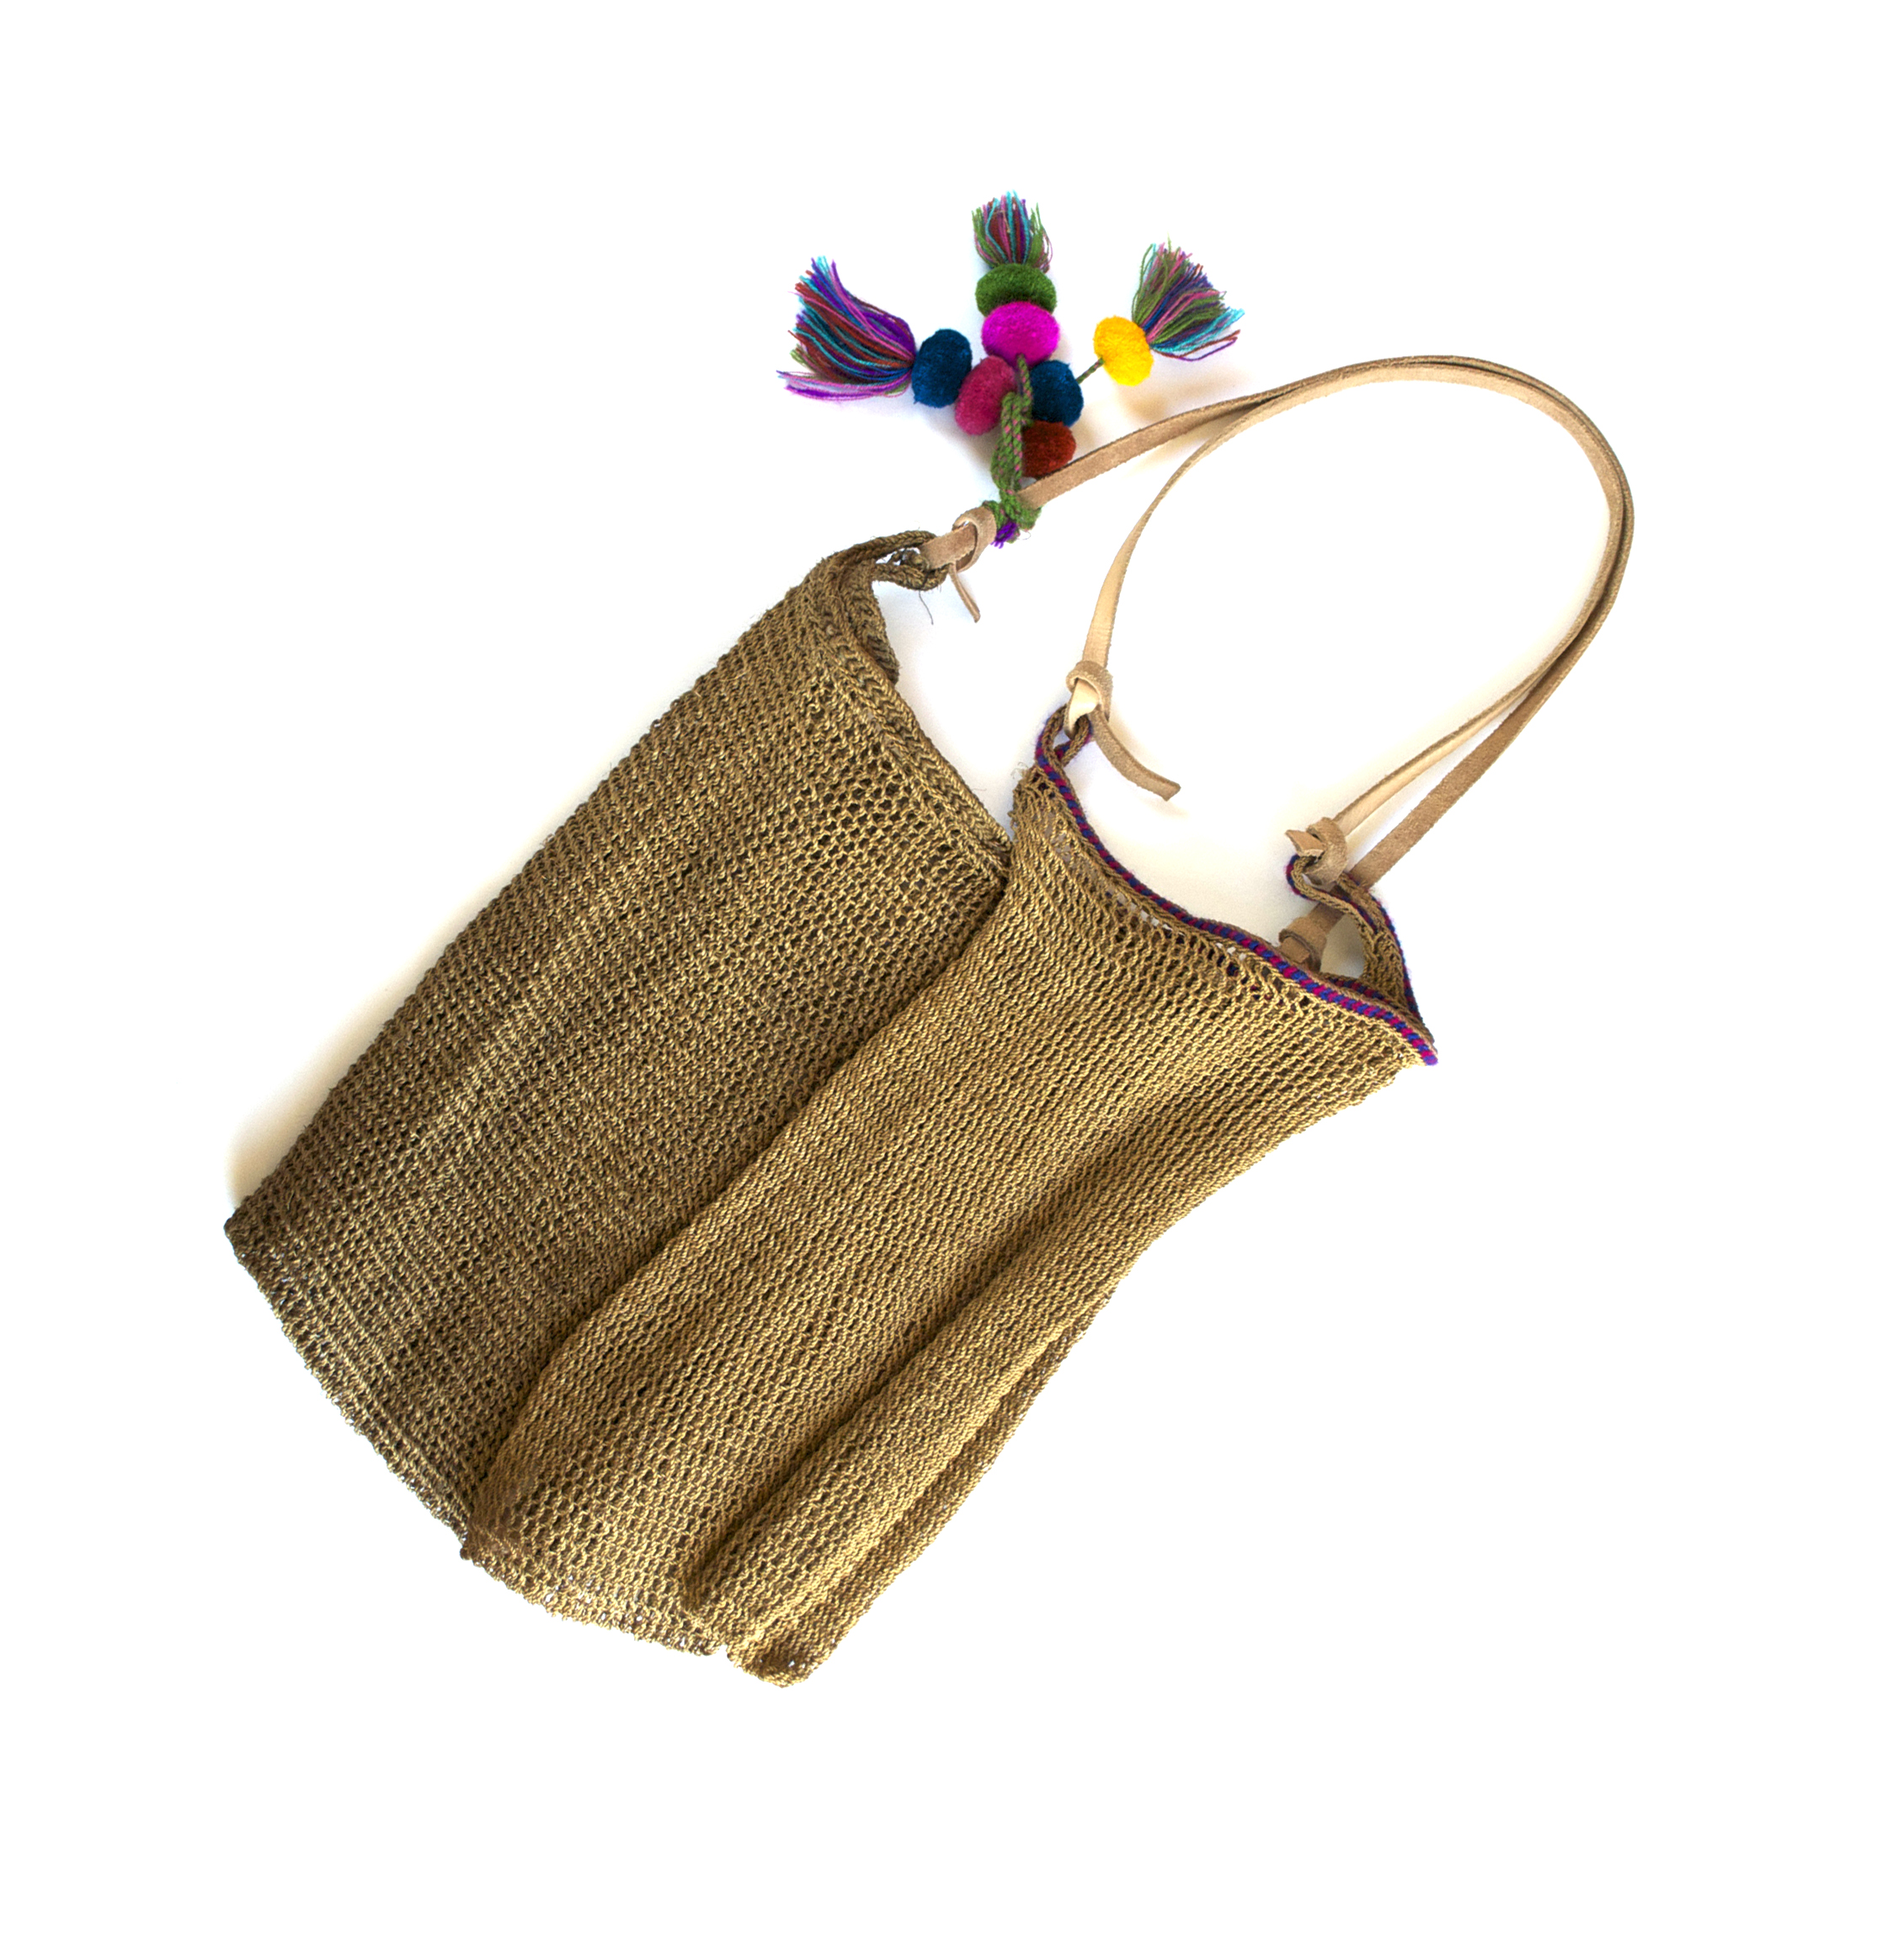 pennyroyal design netting bag